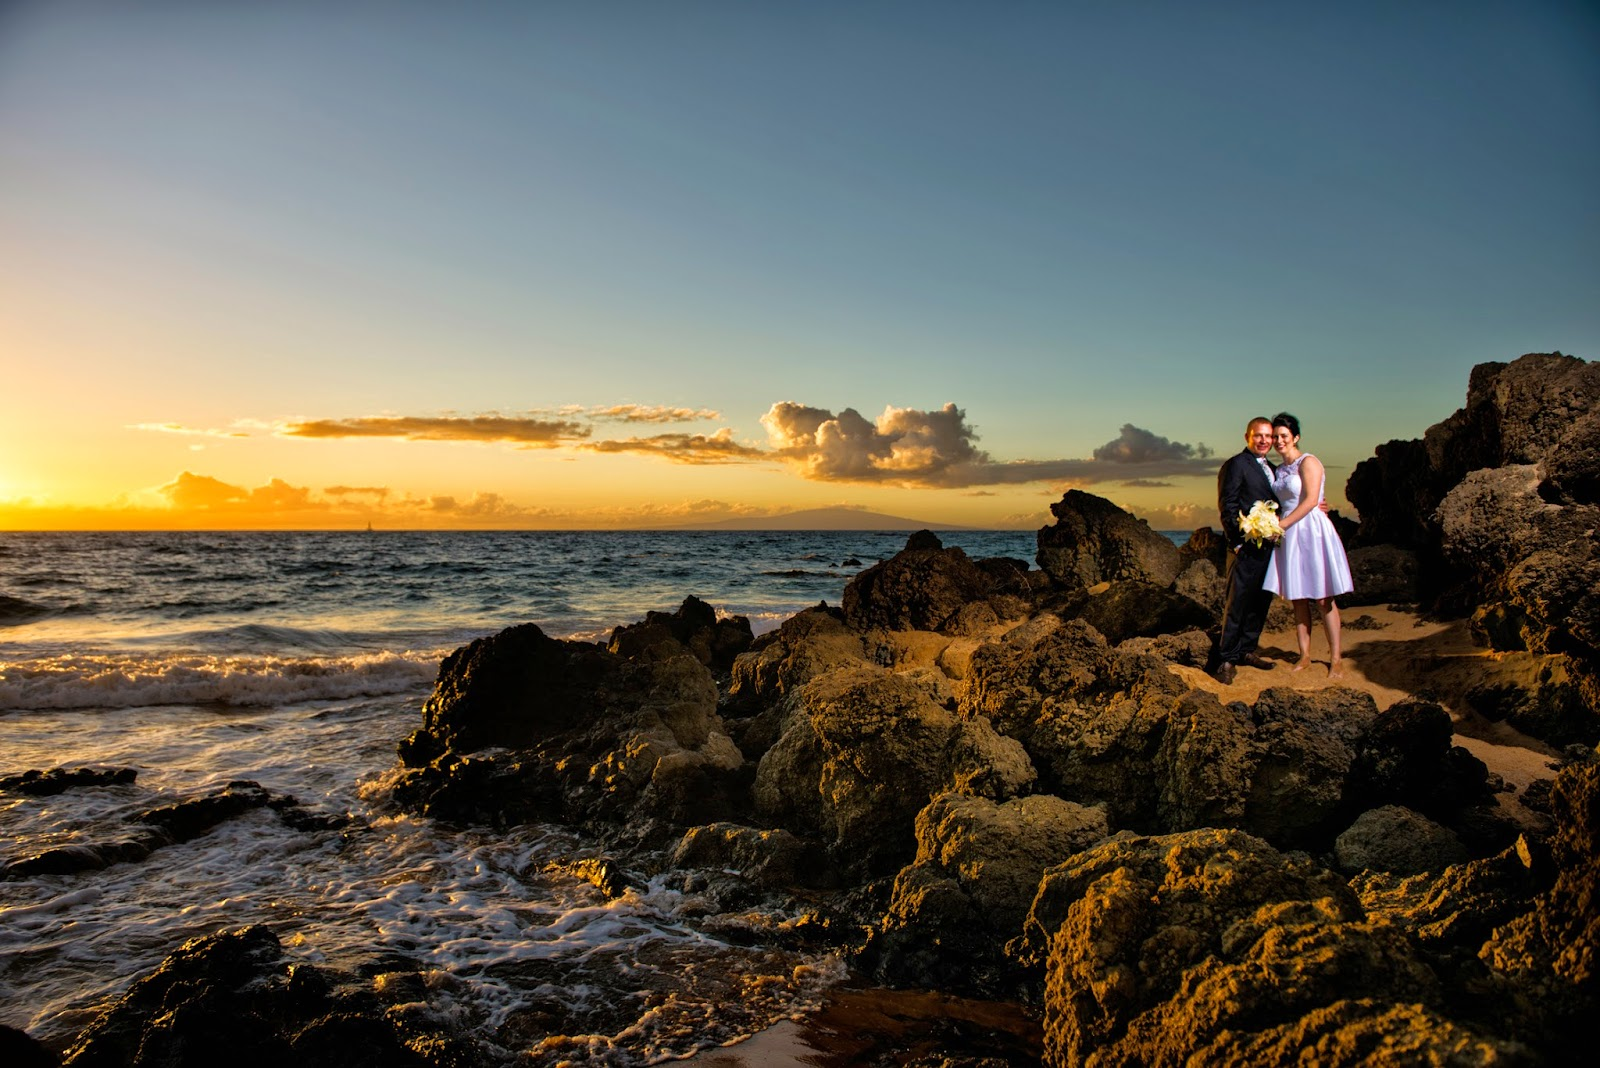 Maui Wedding Photography, Maui Wedding Photographers, Maui Wedding planners, Maui Weddings